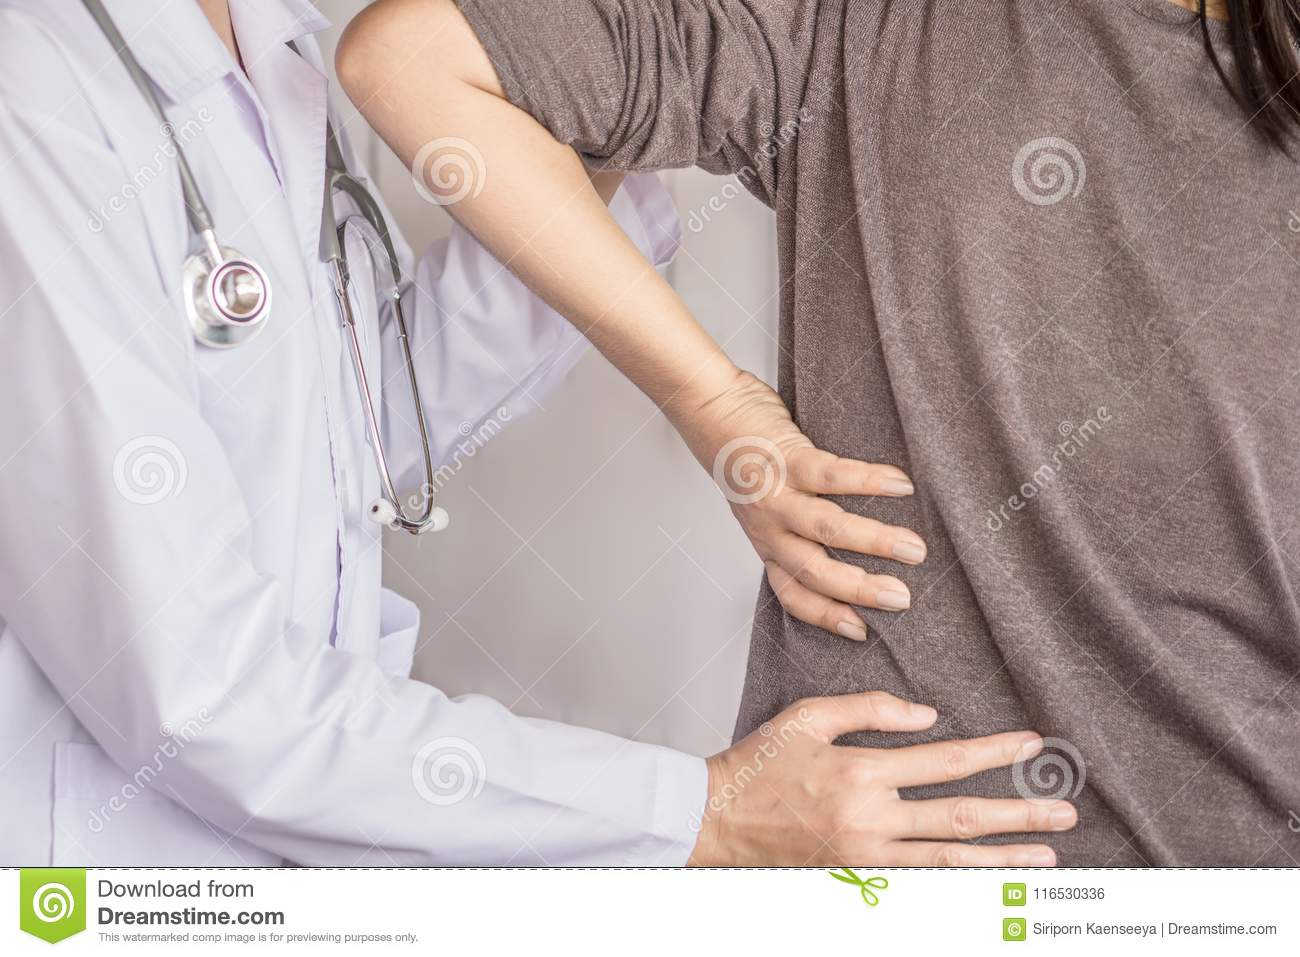 Female doctor examining a patient suffering from back pain